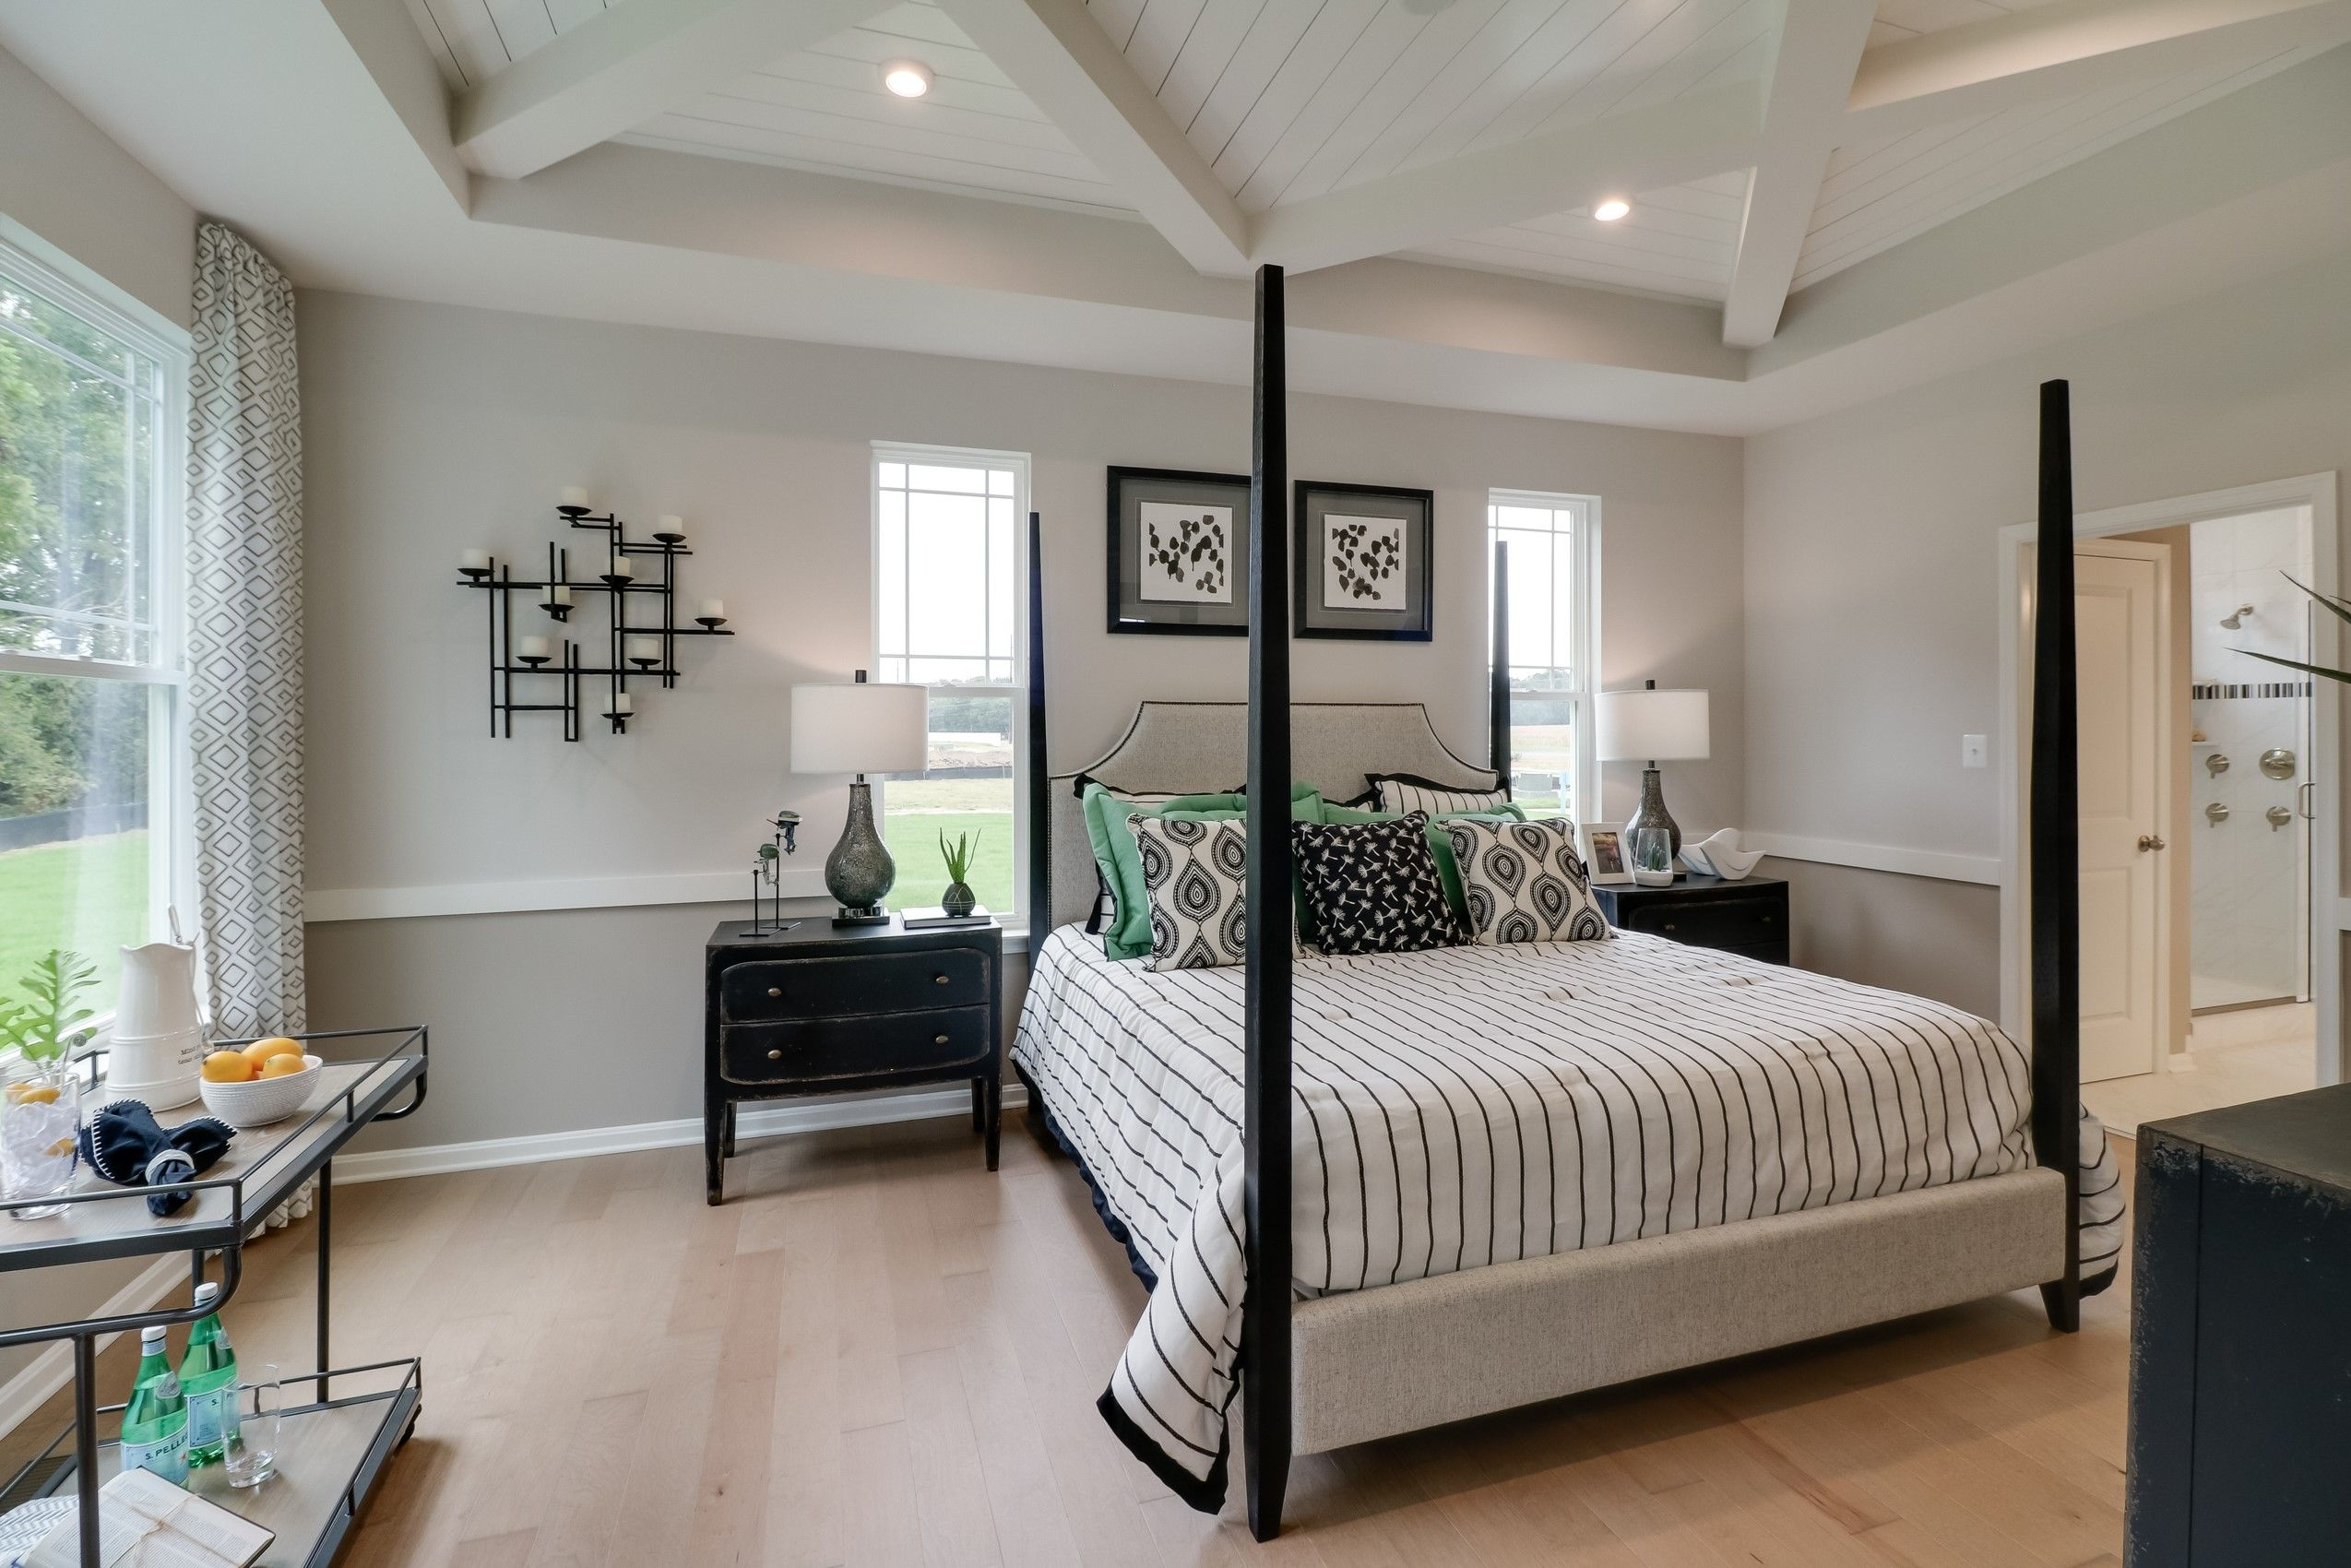 Bedroom featured in the Eastwood By K. Hovnanian's® Four Seasons in Sussex, DE